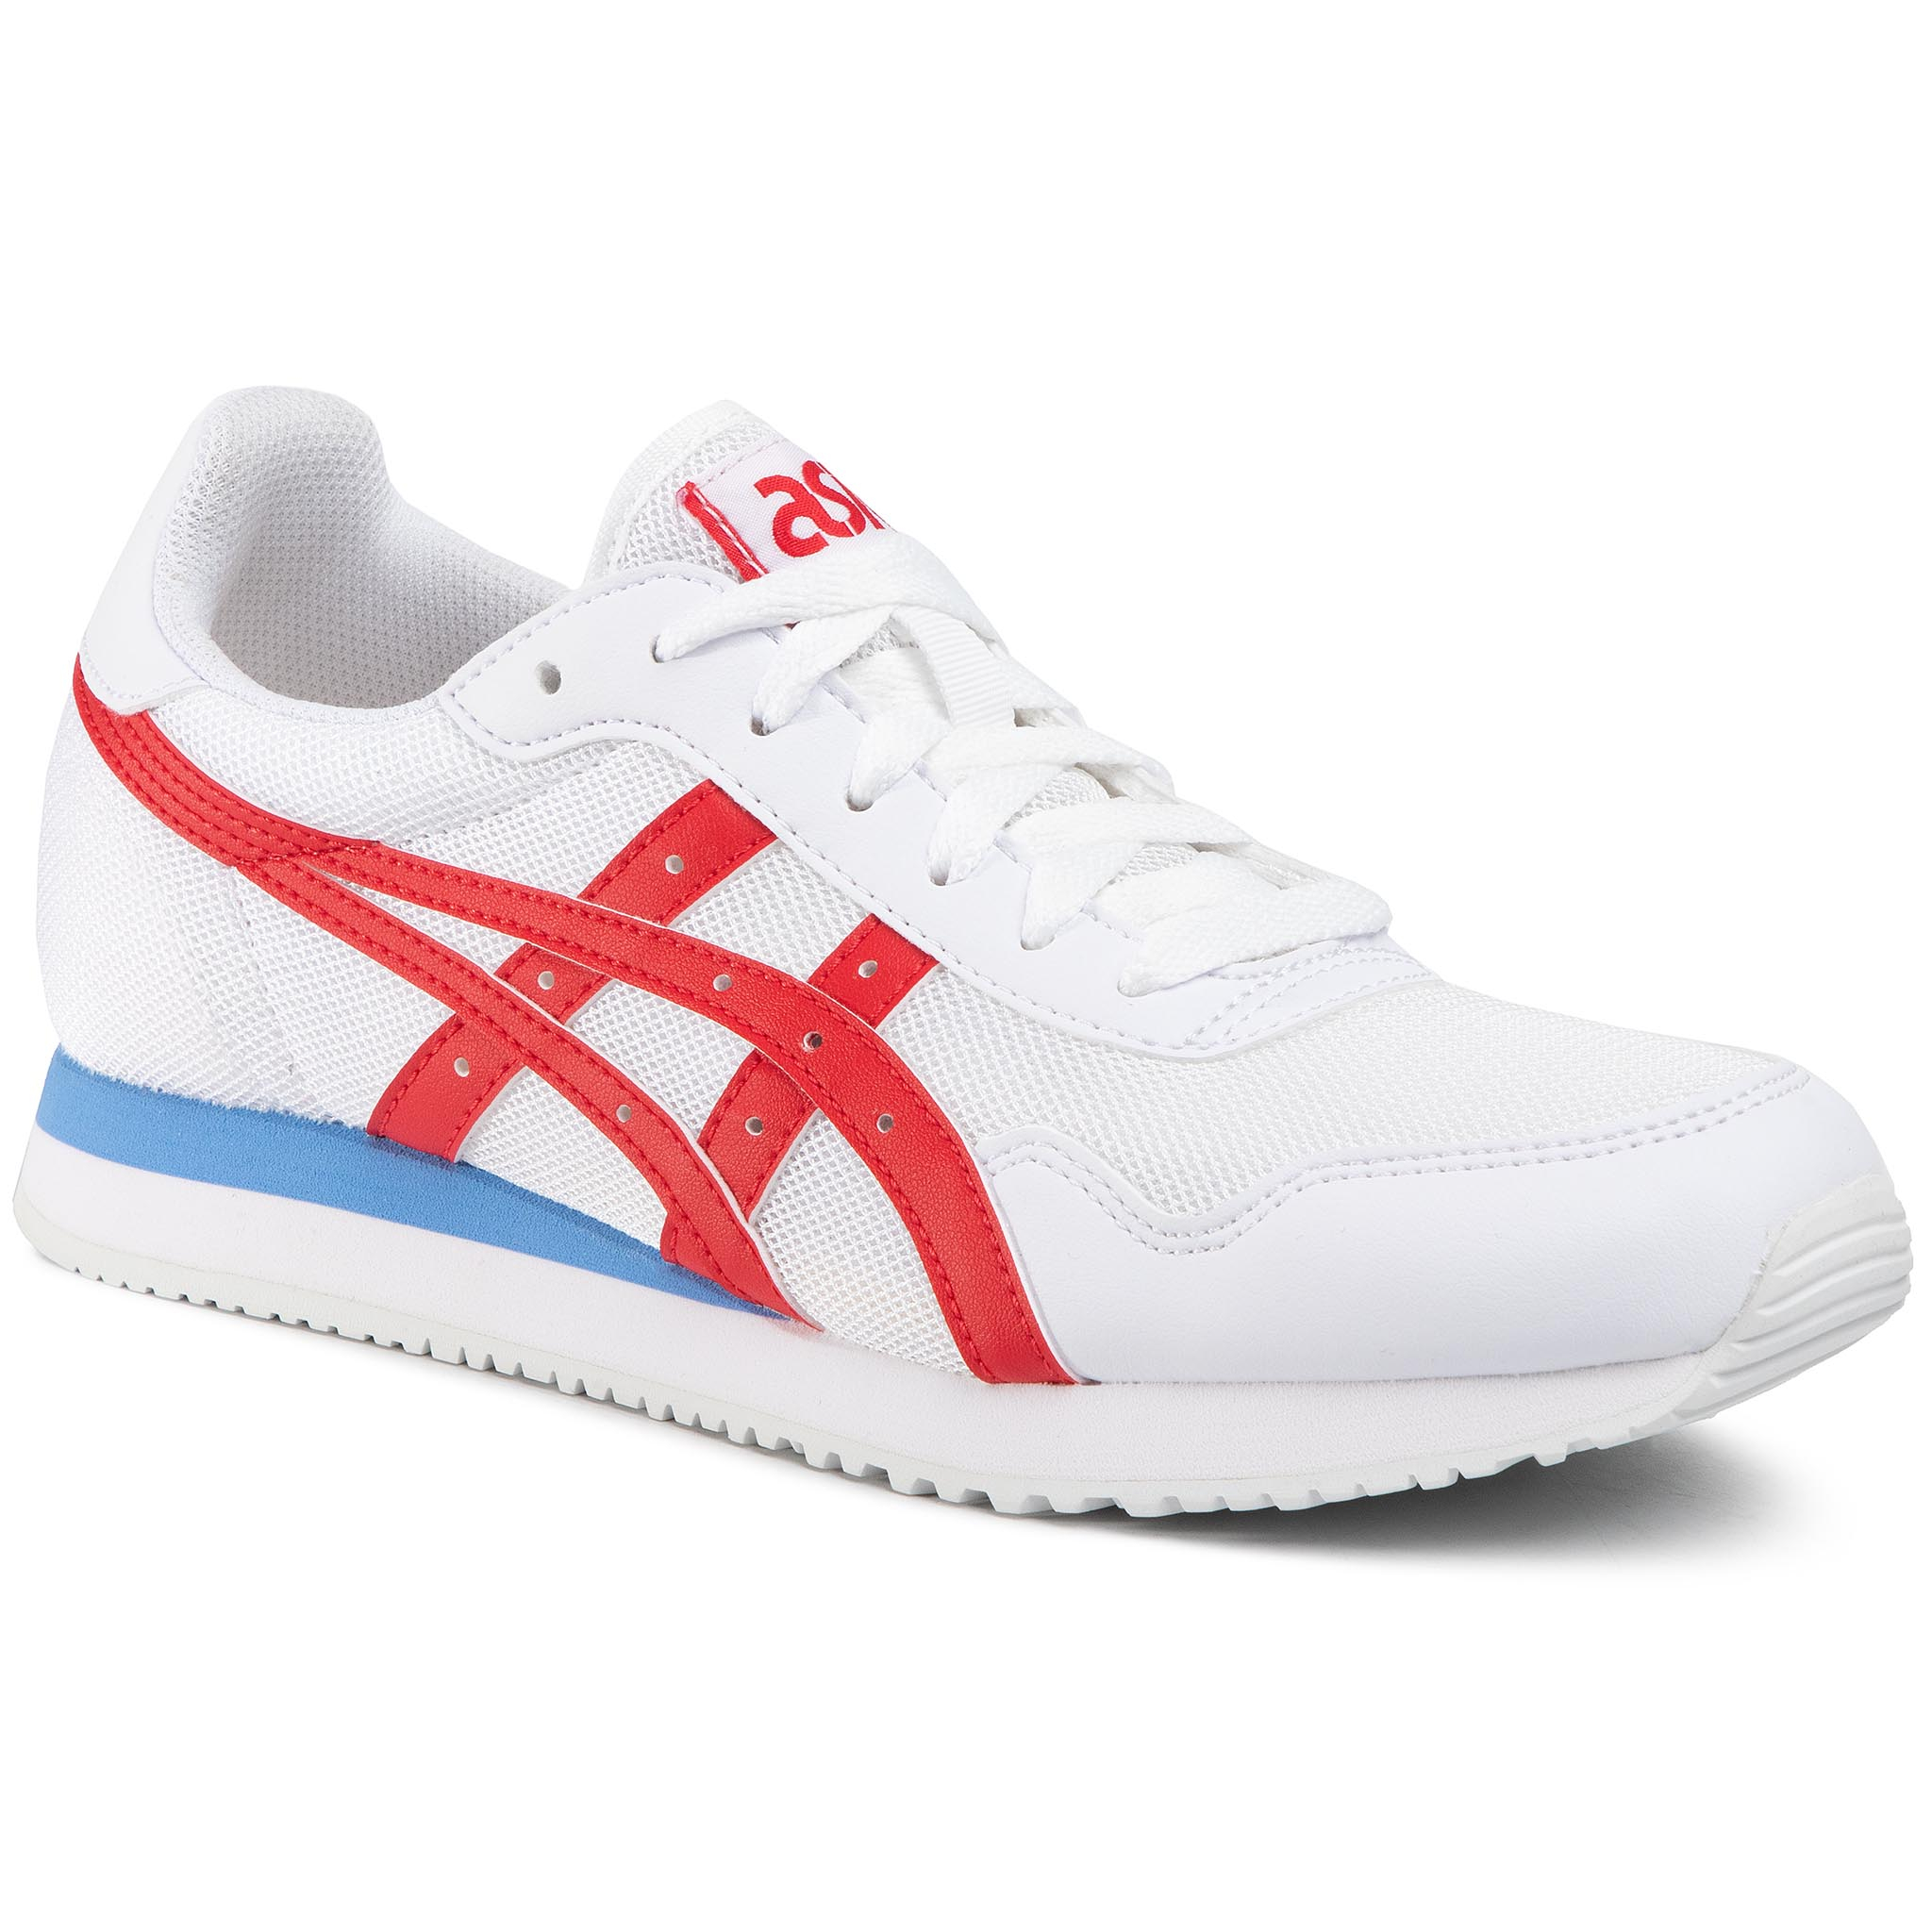 Sneakers ASICS - Runner 1191A207 White/Classic Red 104